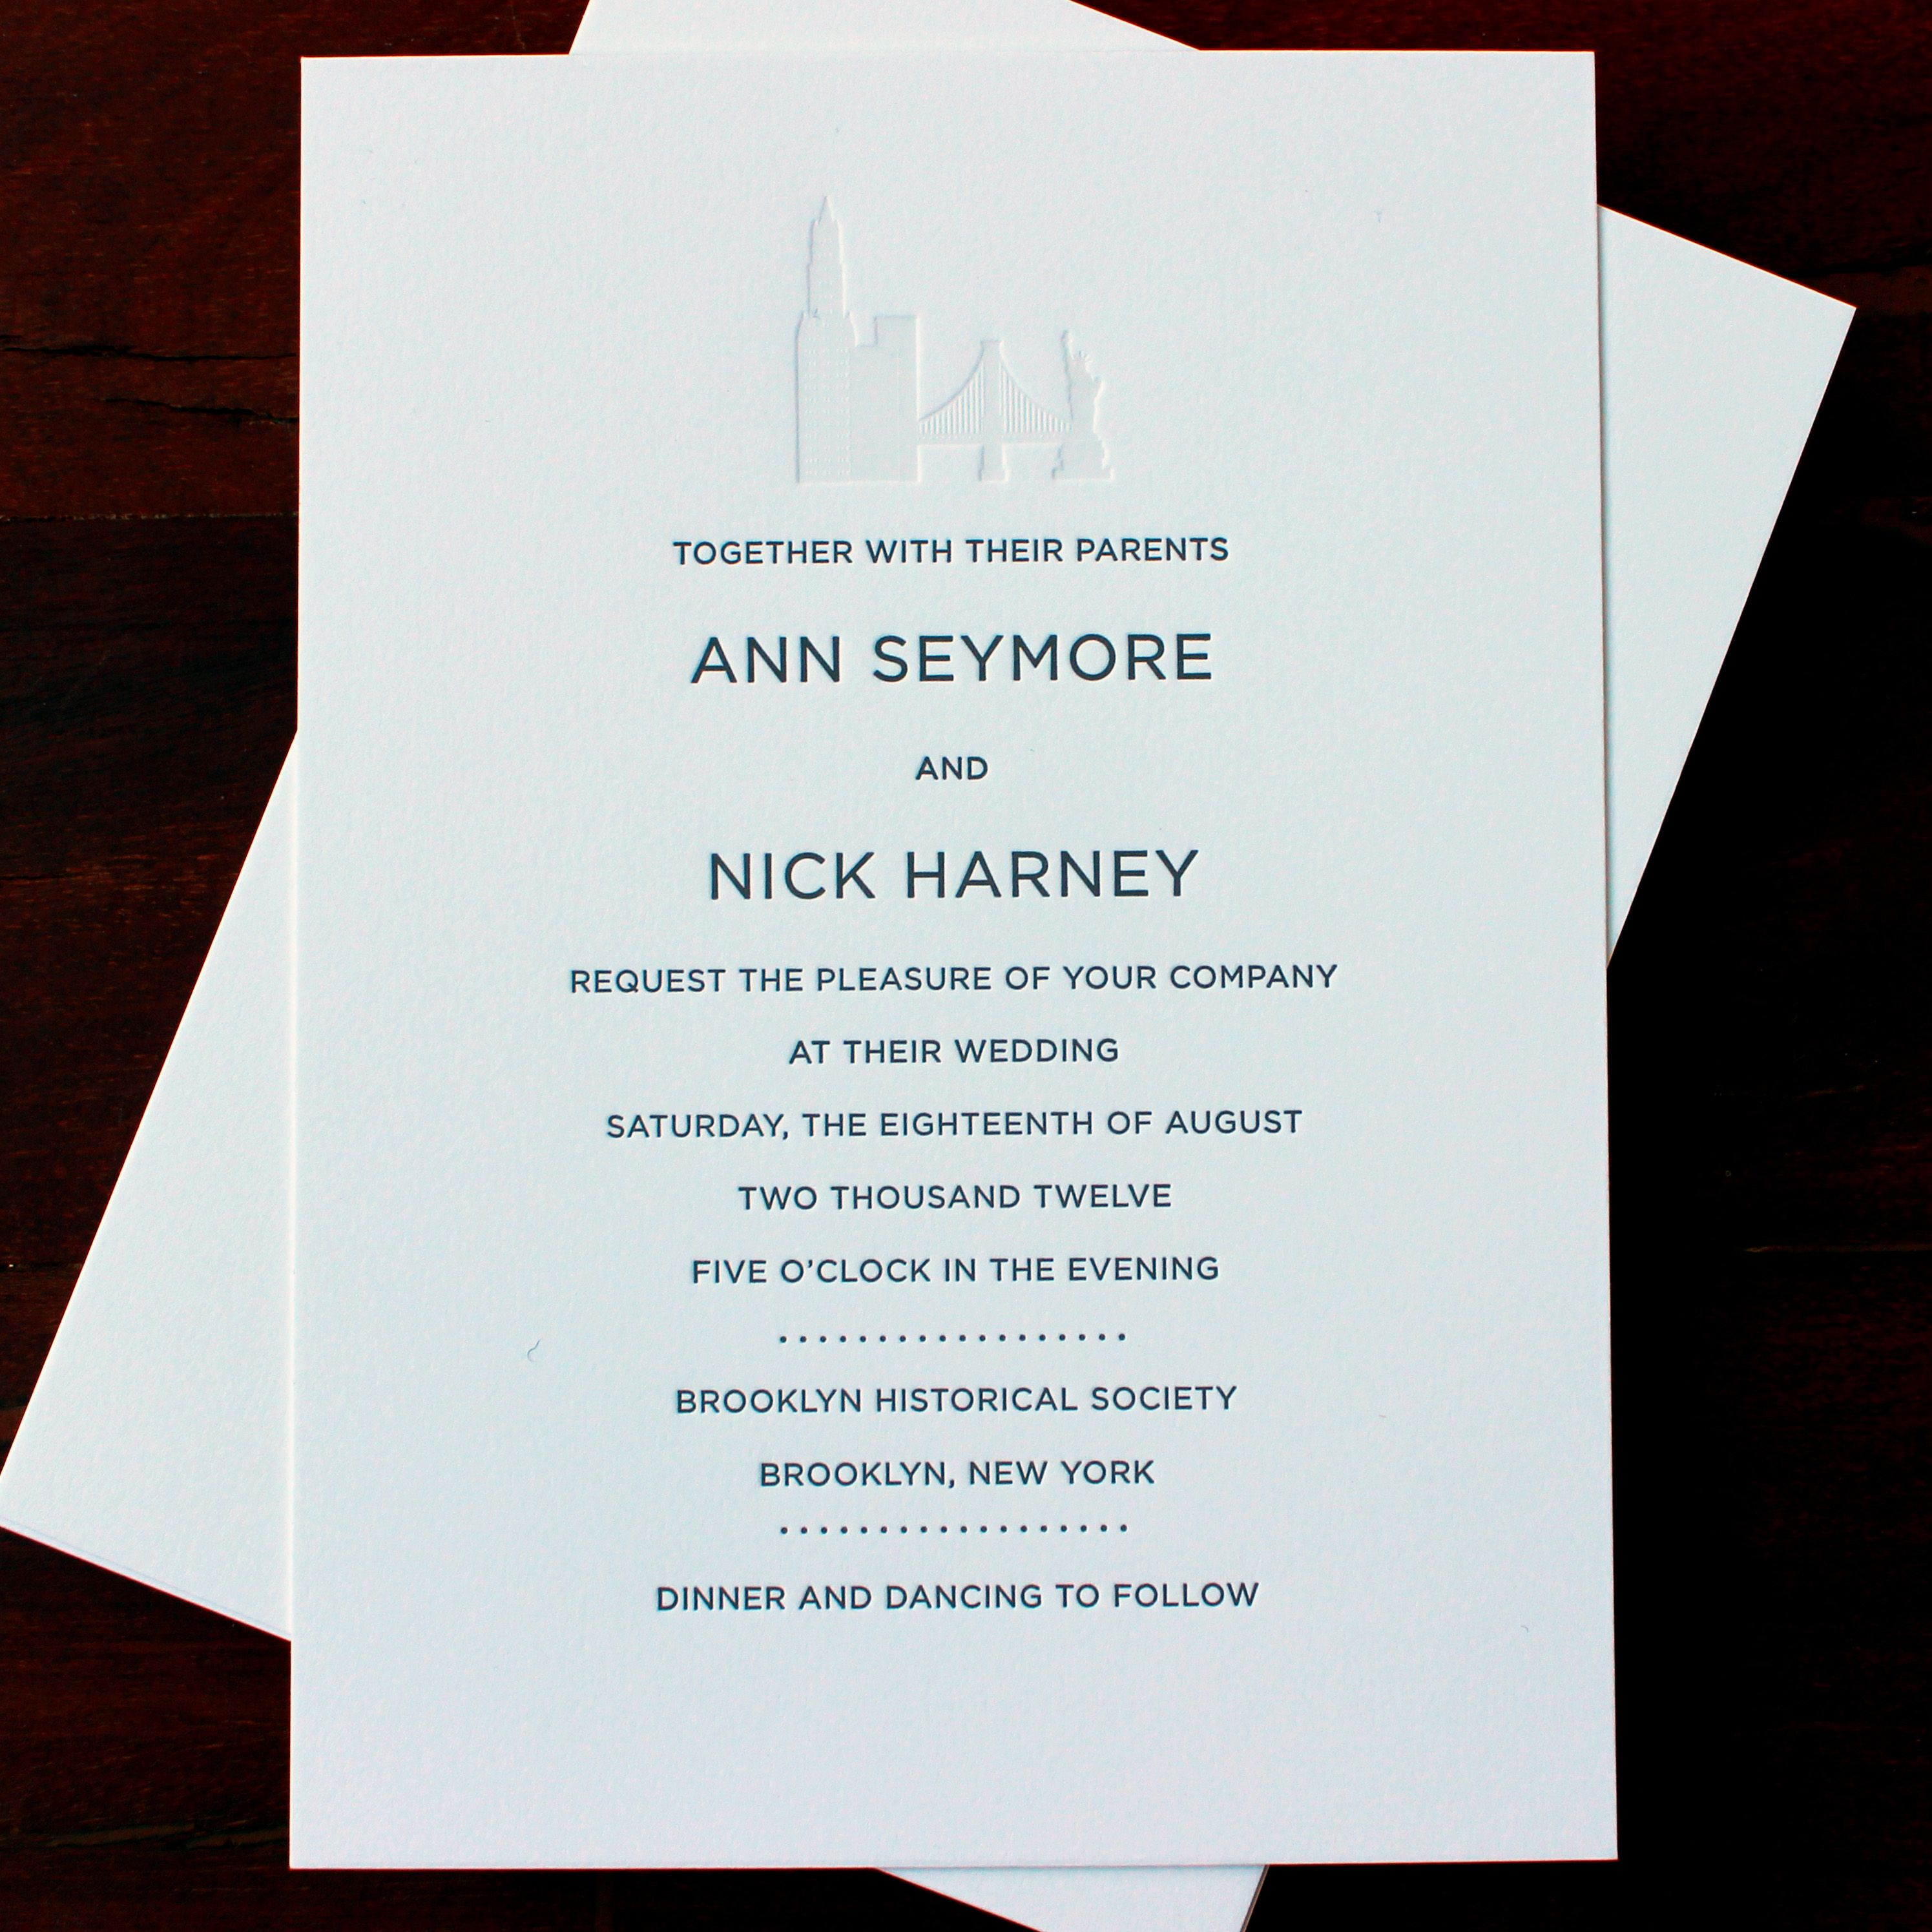 embossed wedding invitations Classic sans serif letterpress wedding invitation with blind embossed New York skyline detail